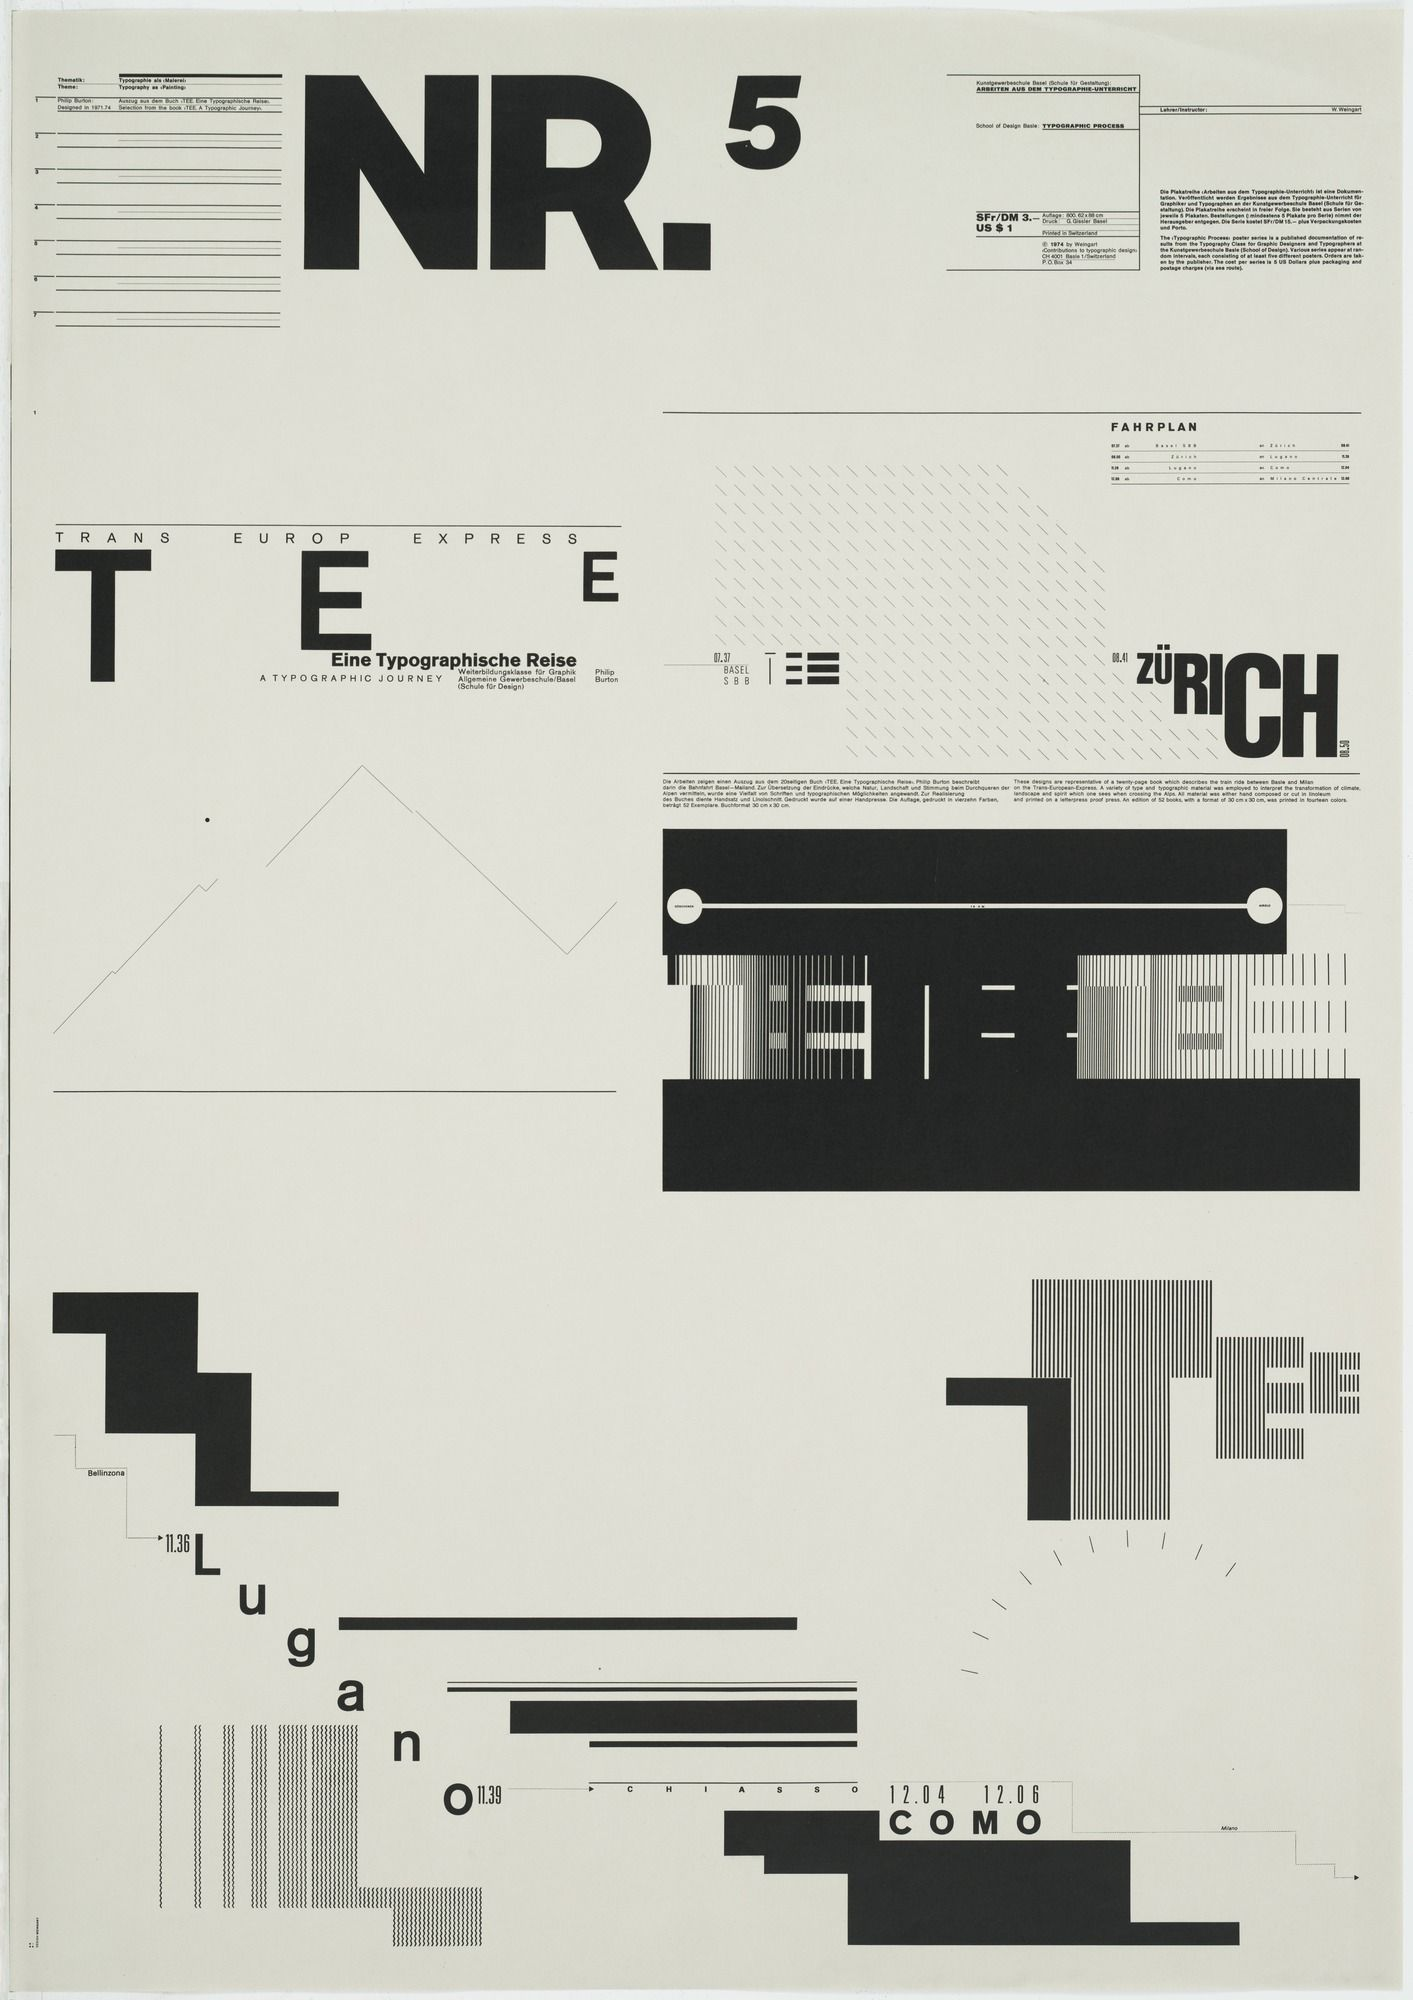 "Wolfgang Weingart. Typographic Process, Nr 5. Typography as (Painting). 1971-1974. Lithograph. 34 1/2 x 24 1/4"" (87.6 x 61.6 cm). G. Gissler Basle. Jürg Zumtobel Purchase Fund. 264.2002.5. © 2017 Wolfgang Weingart. Architecture and Design"